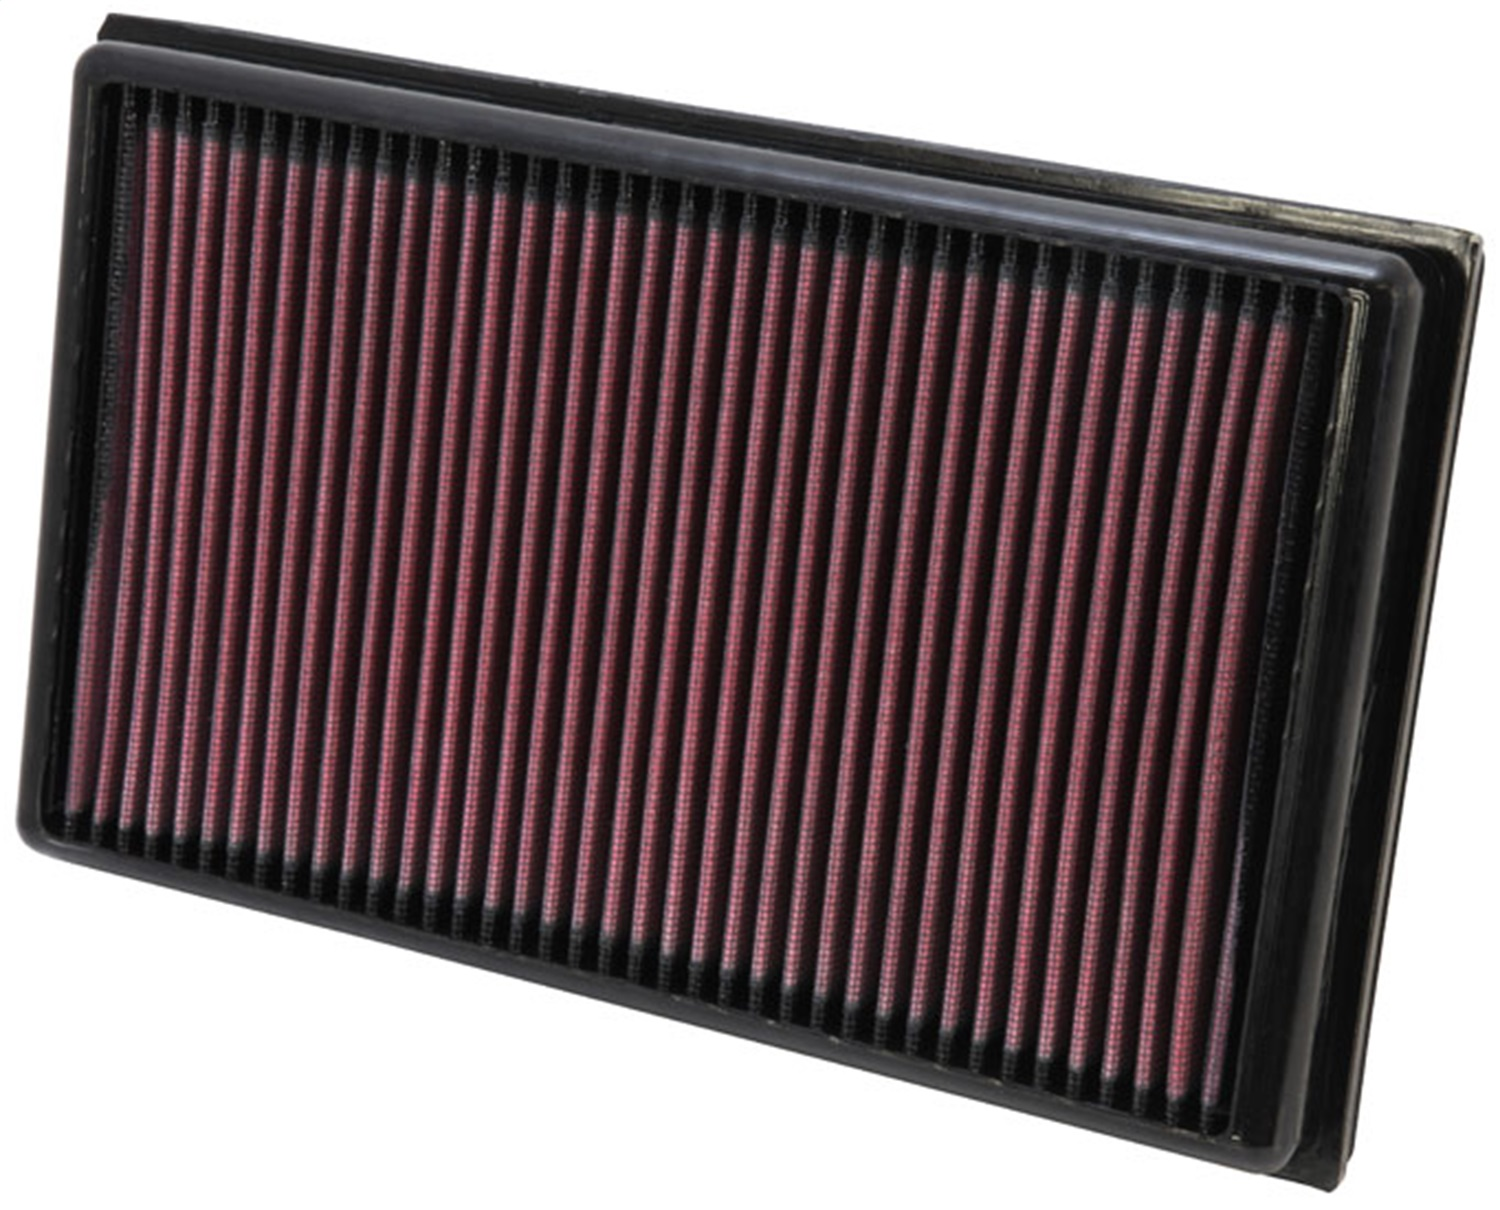 K&N Filters 33-2475 Air Filter Fits 12-14 Impala 33-2475